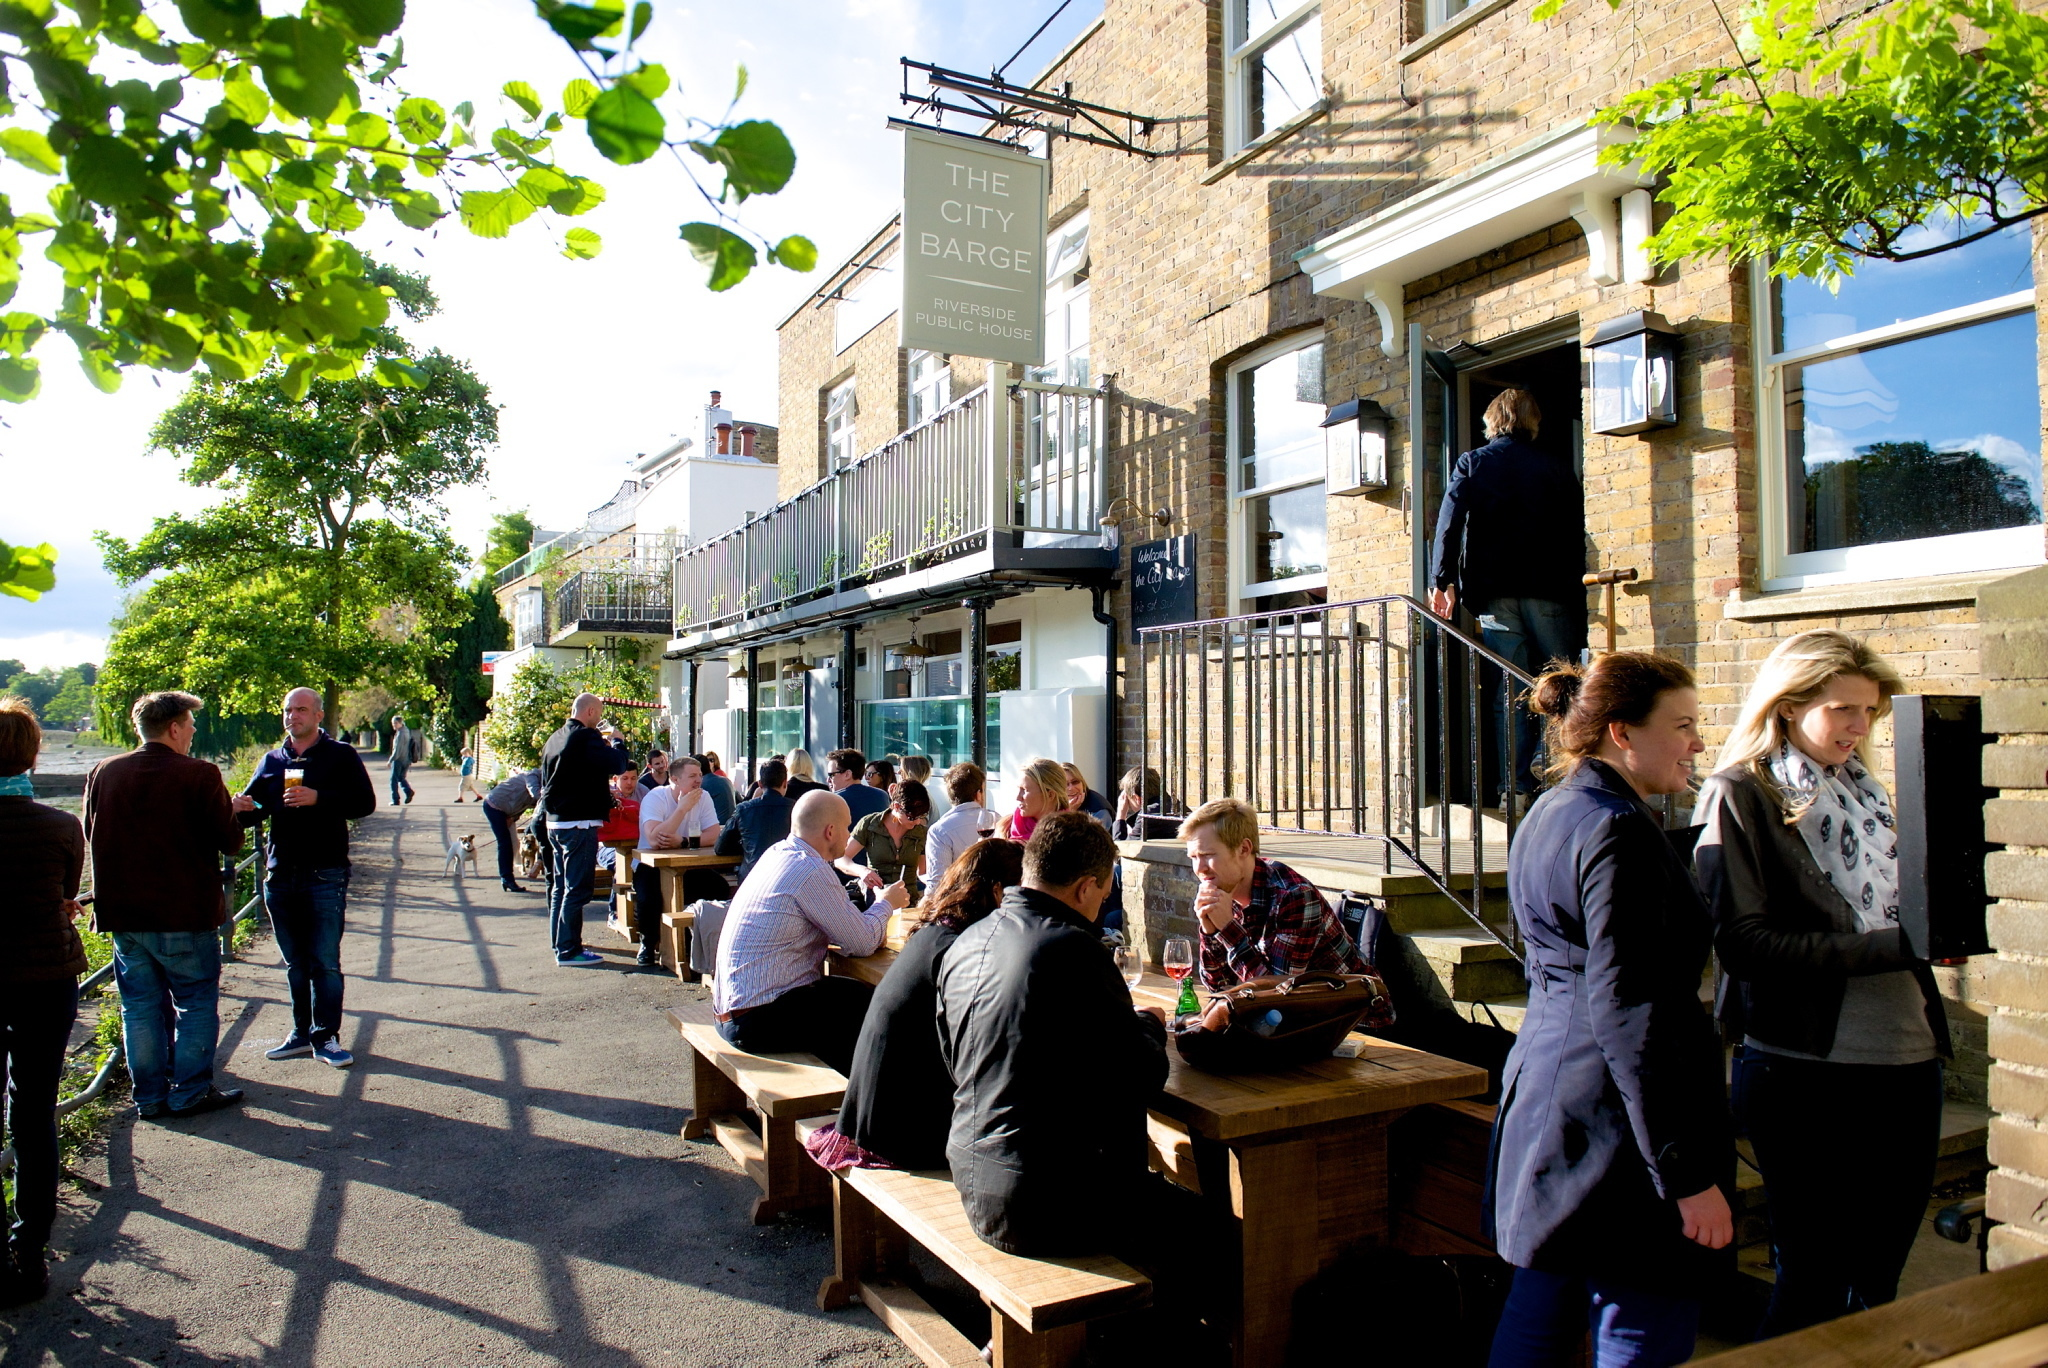 Five glorious waterside pubs you should visit on a sunny day